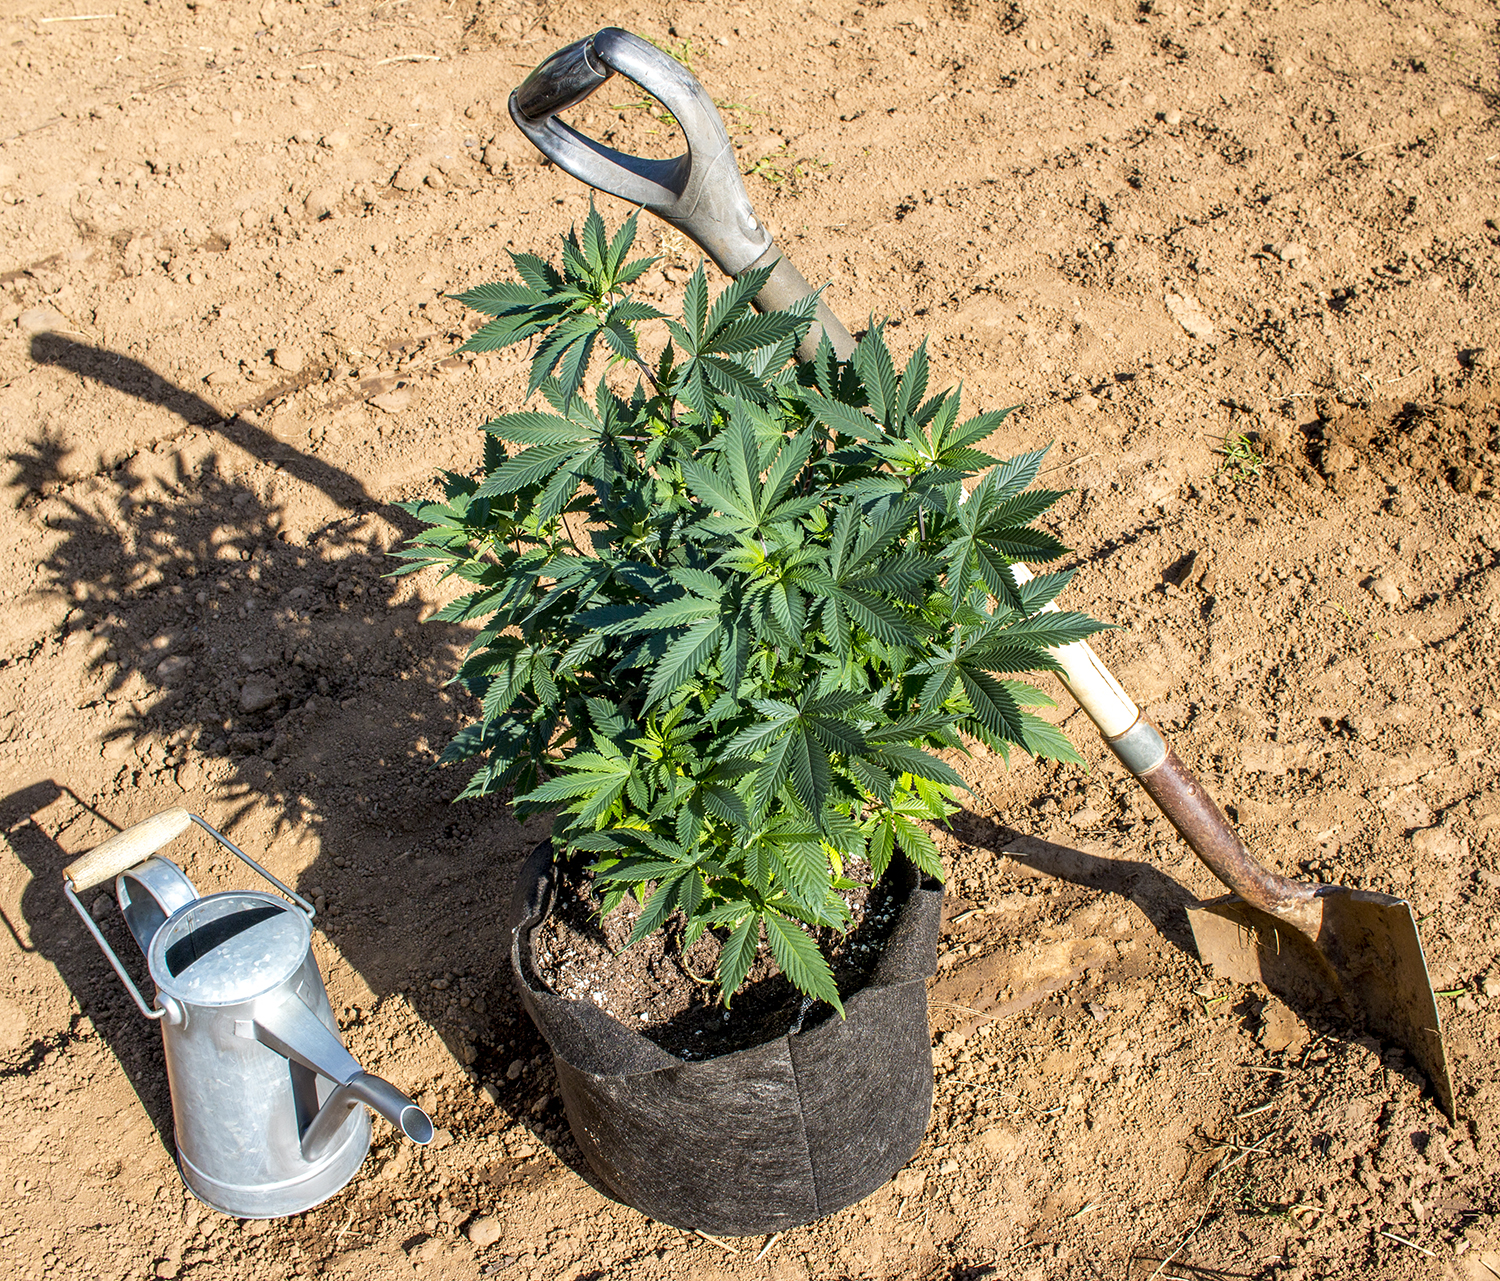 05a 20160529_outdoor_planting.jpg